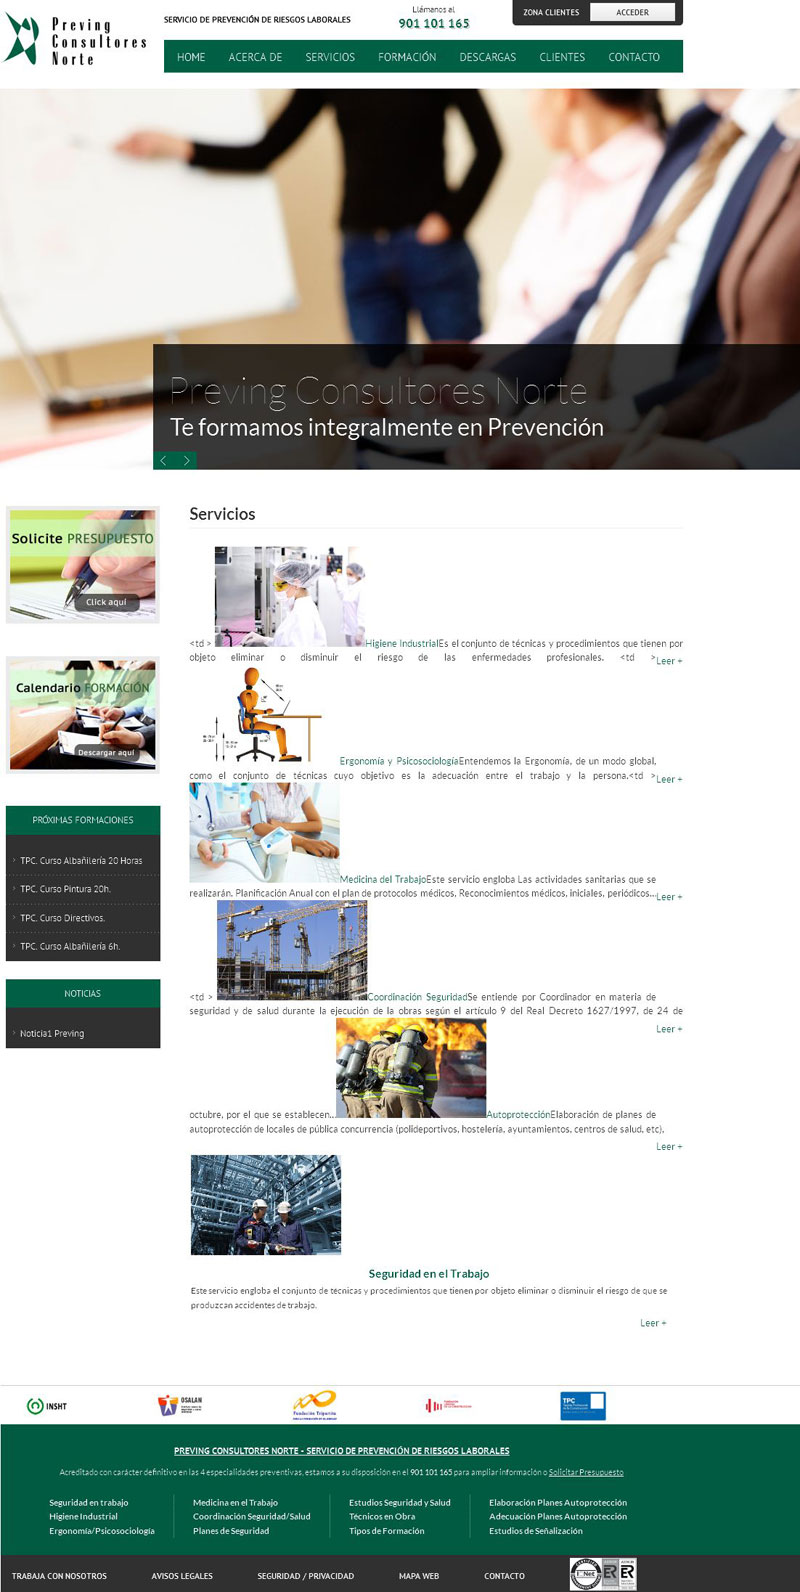 Preving_Homepage02